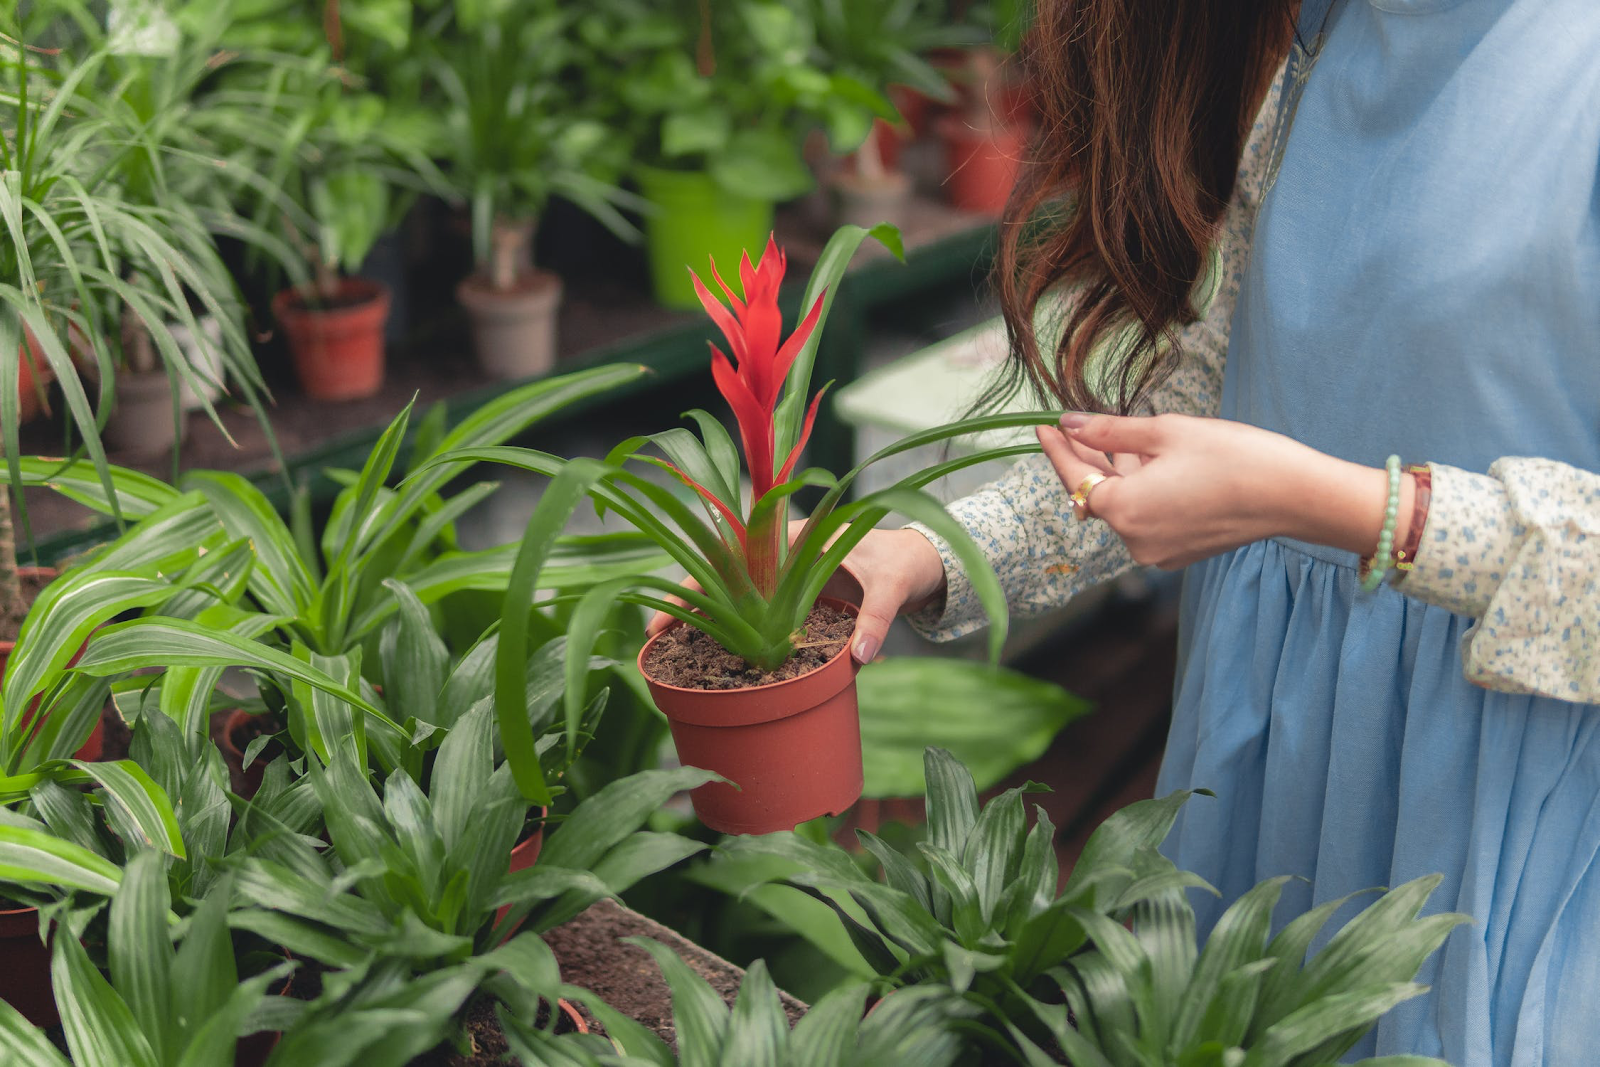 A woman selects a red bromeliad in a gardening shop.